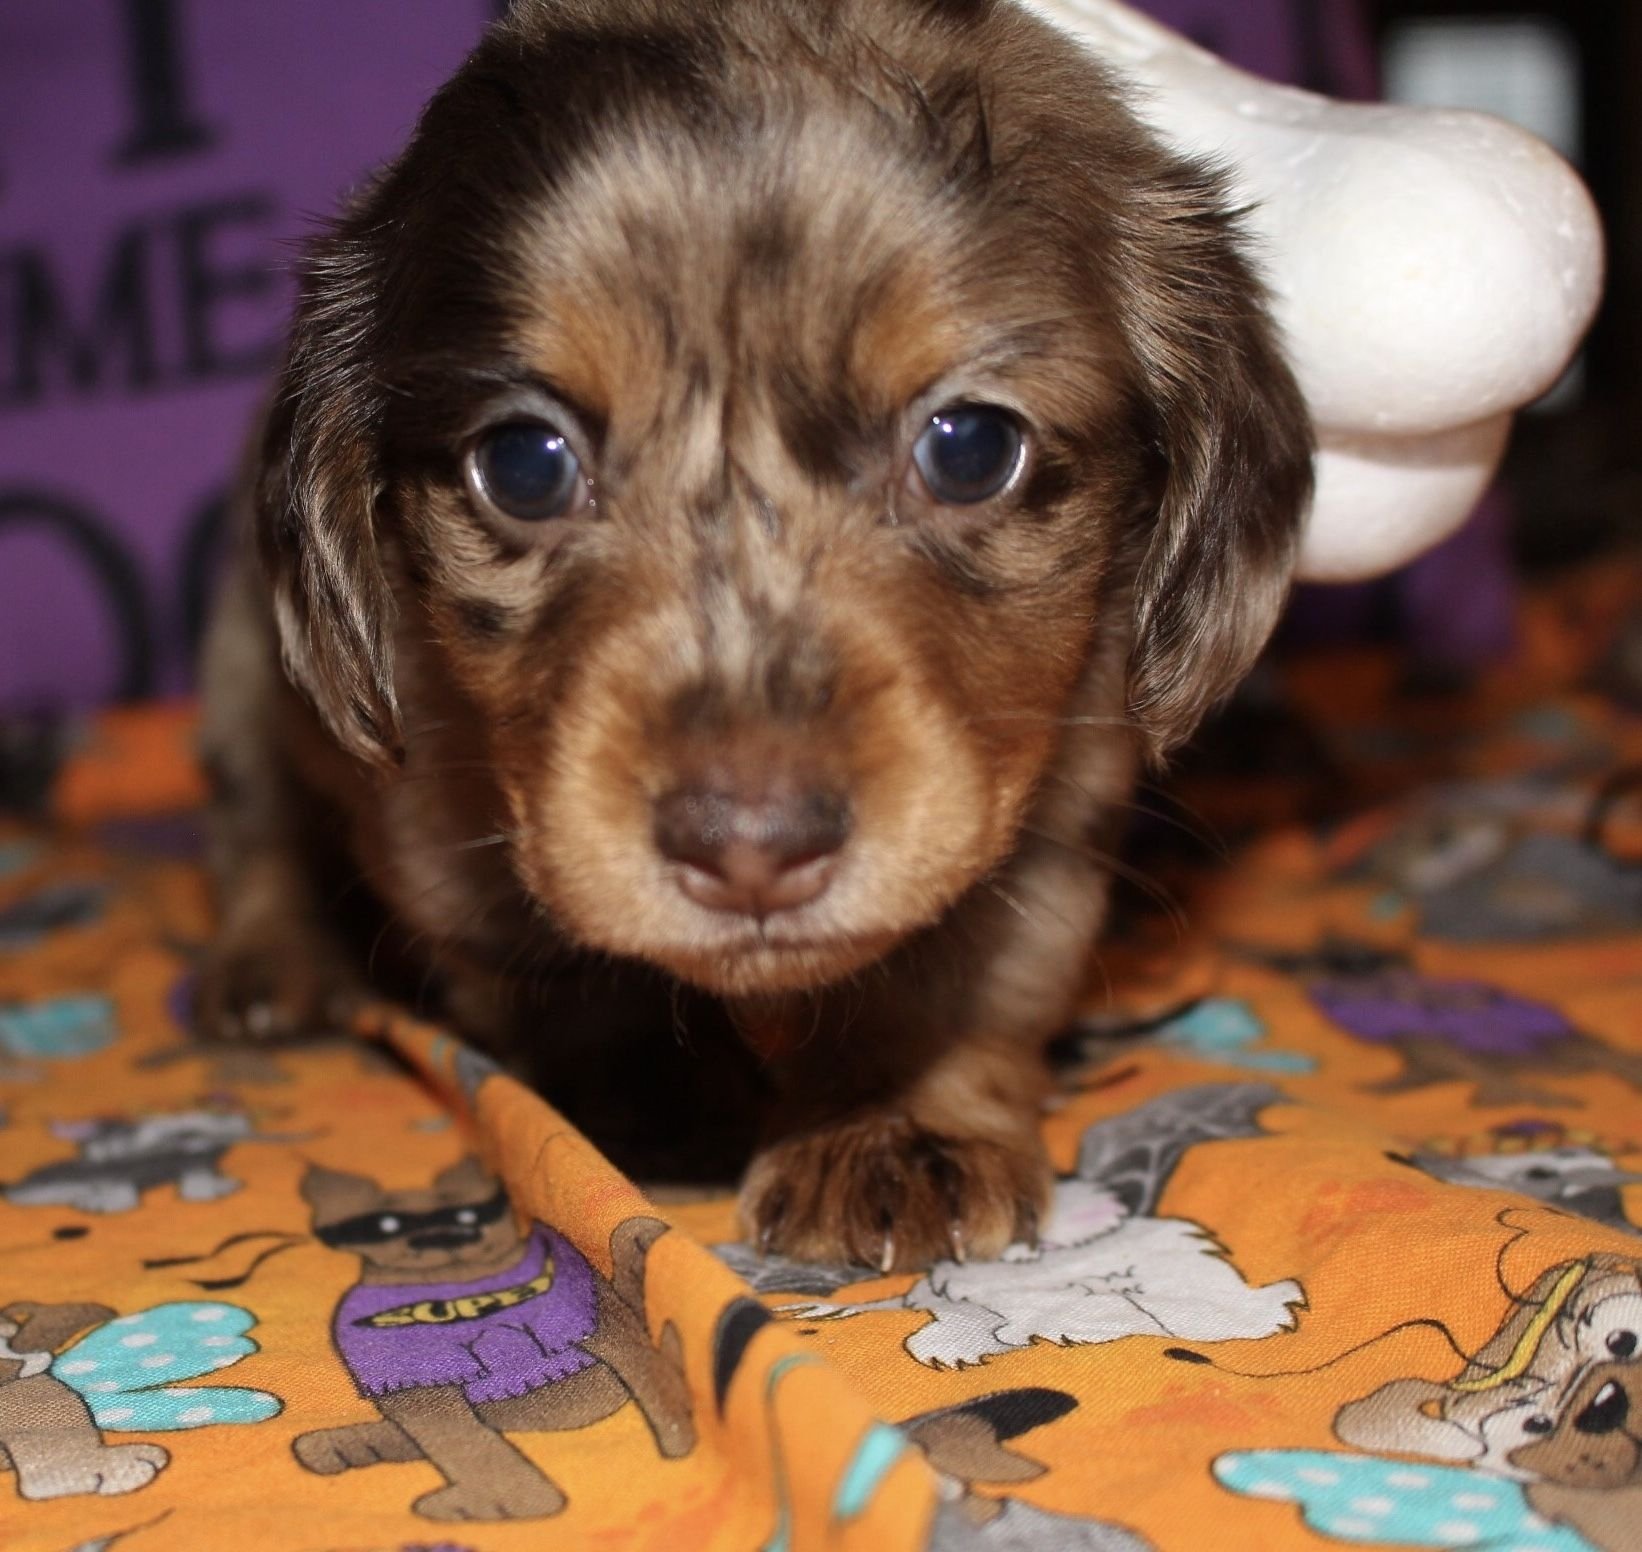 Chocolate Dapple Miniature Longhair Dachshund Puppy Dachshund Breed Dachshund Puppies Clever Dog